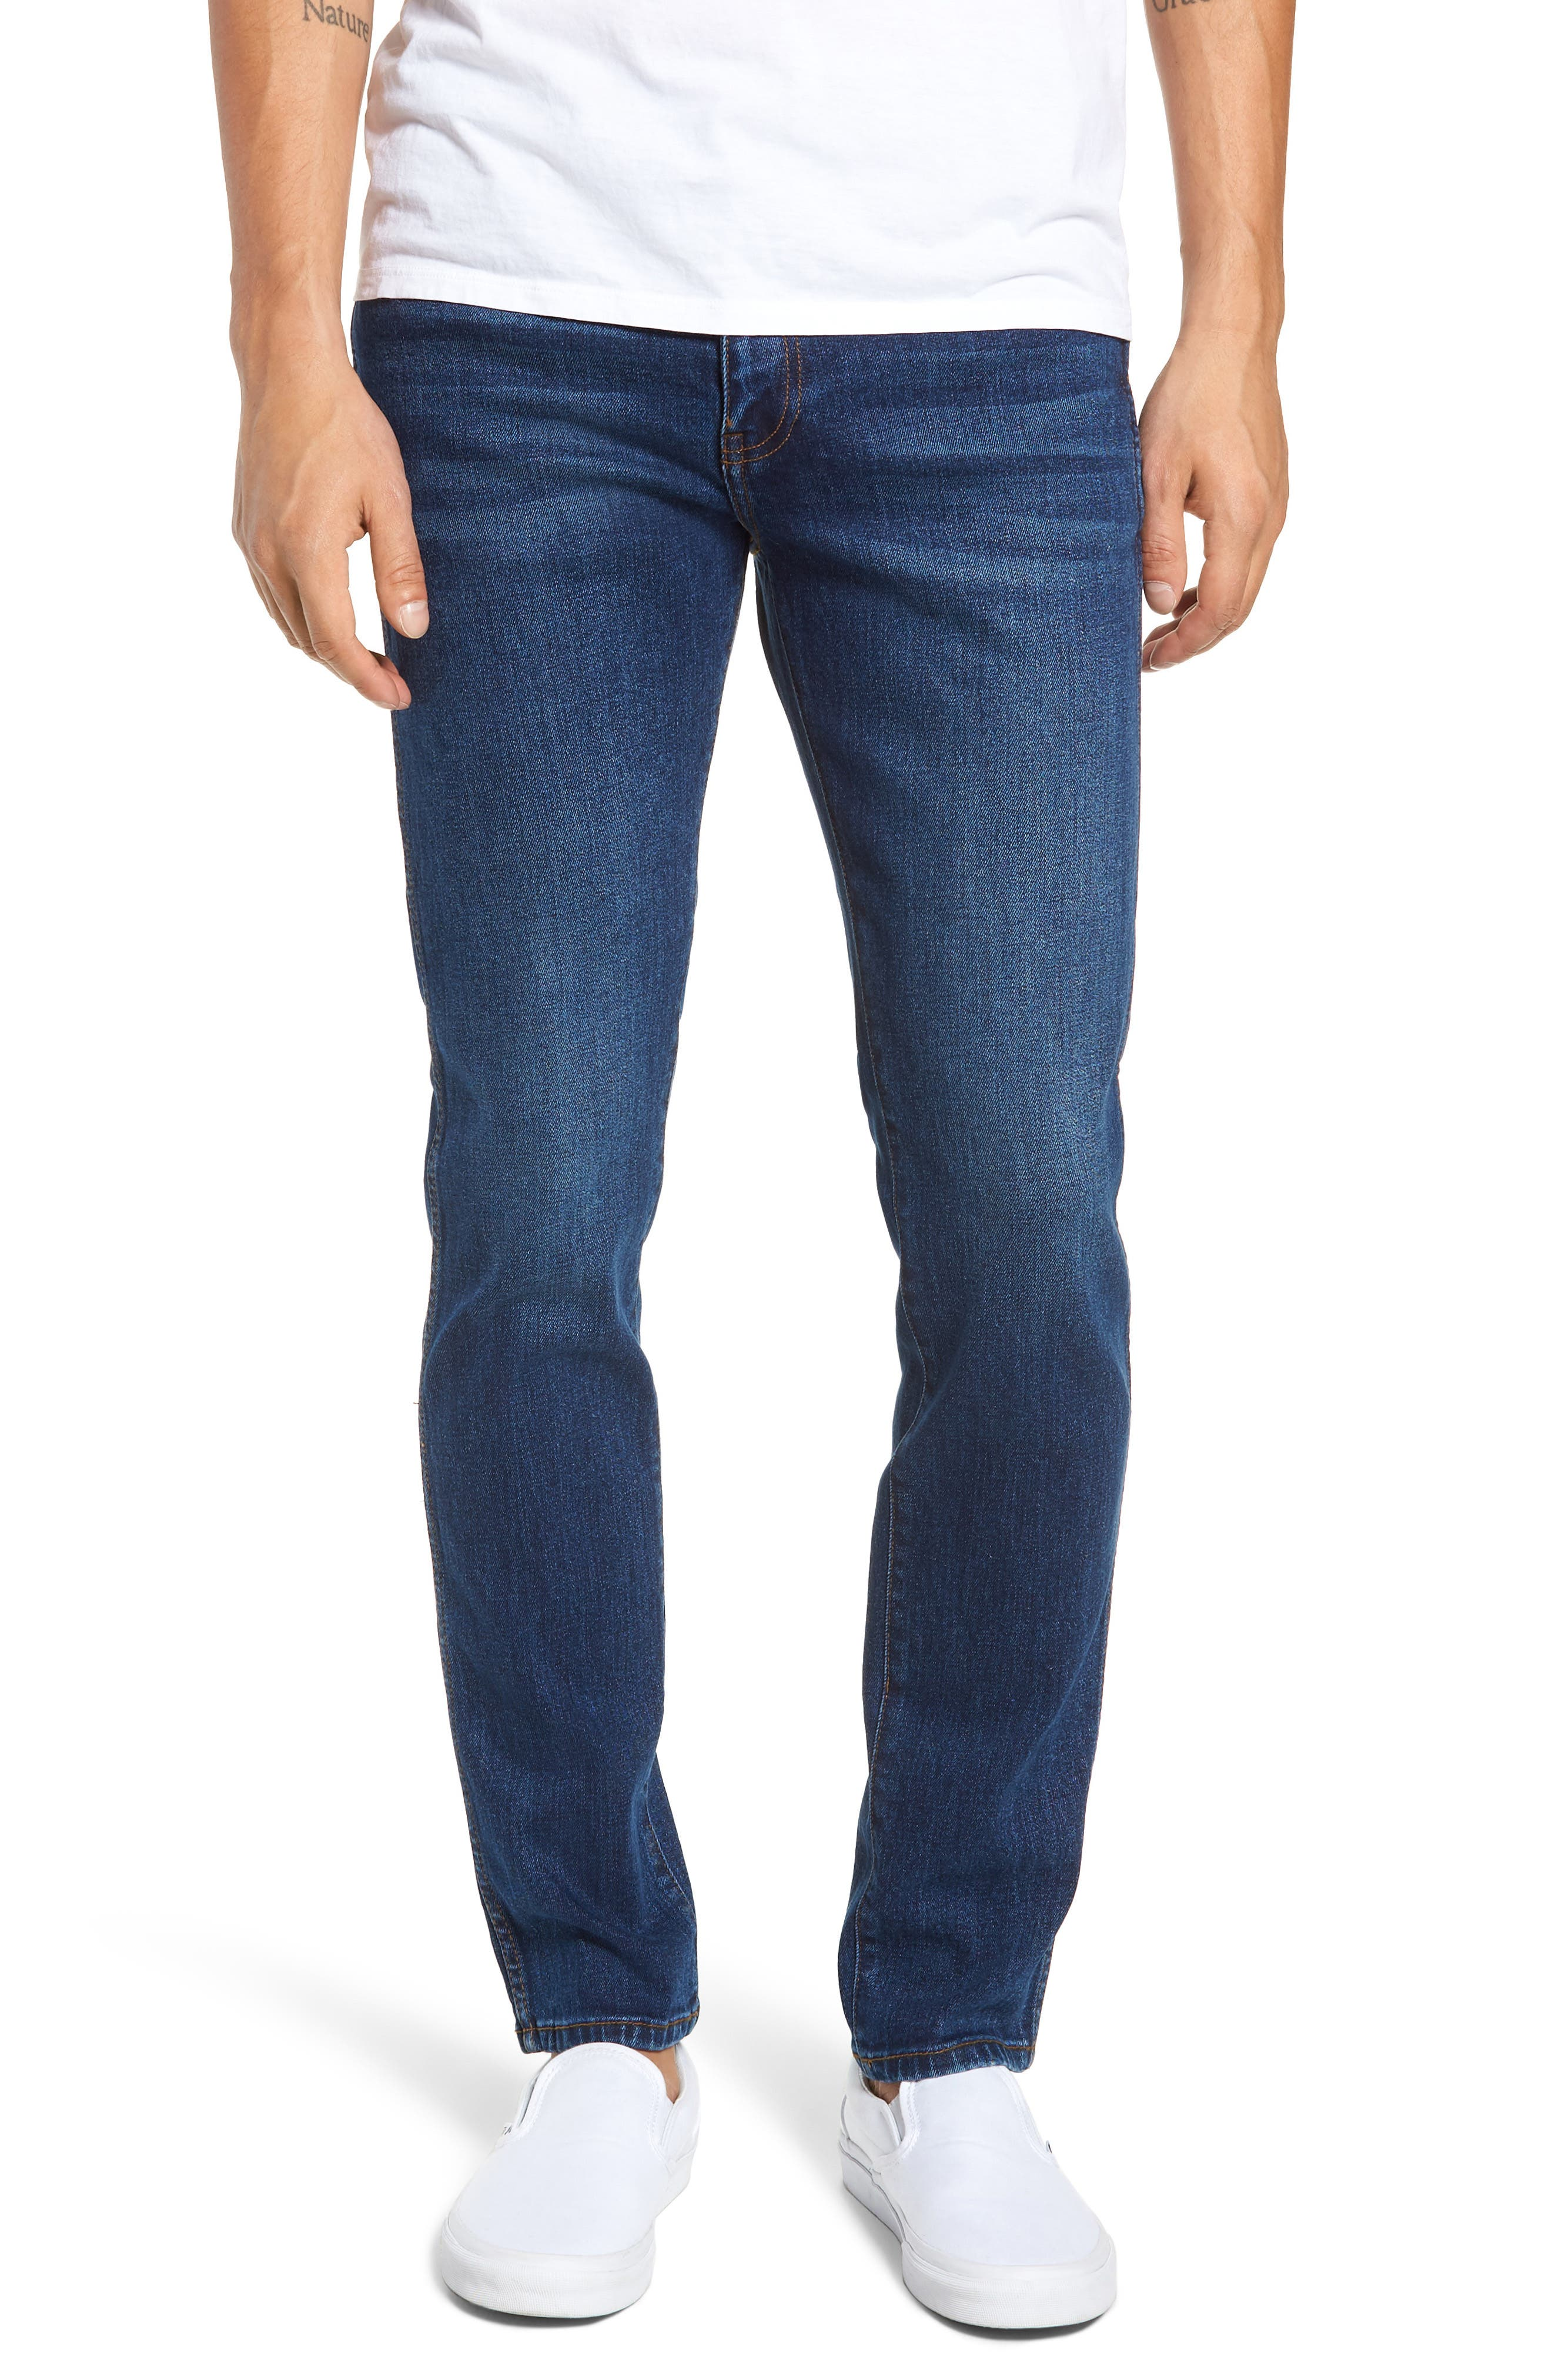 Snap Skinny Fit Jeans,                             Main thumbnail 1, color,                             DARK SHADED BLUE